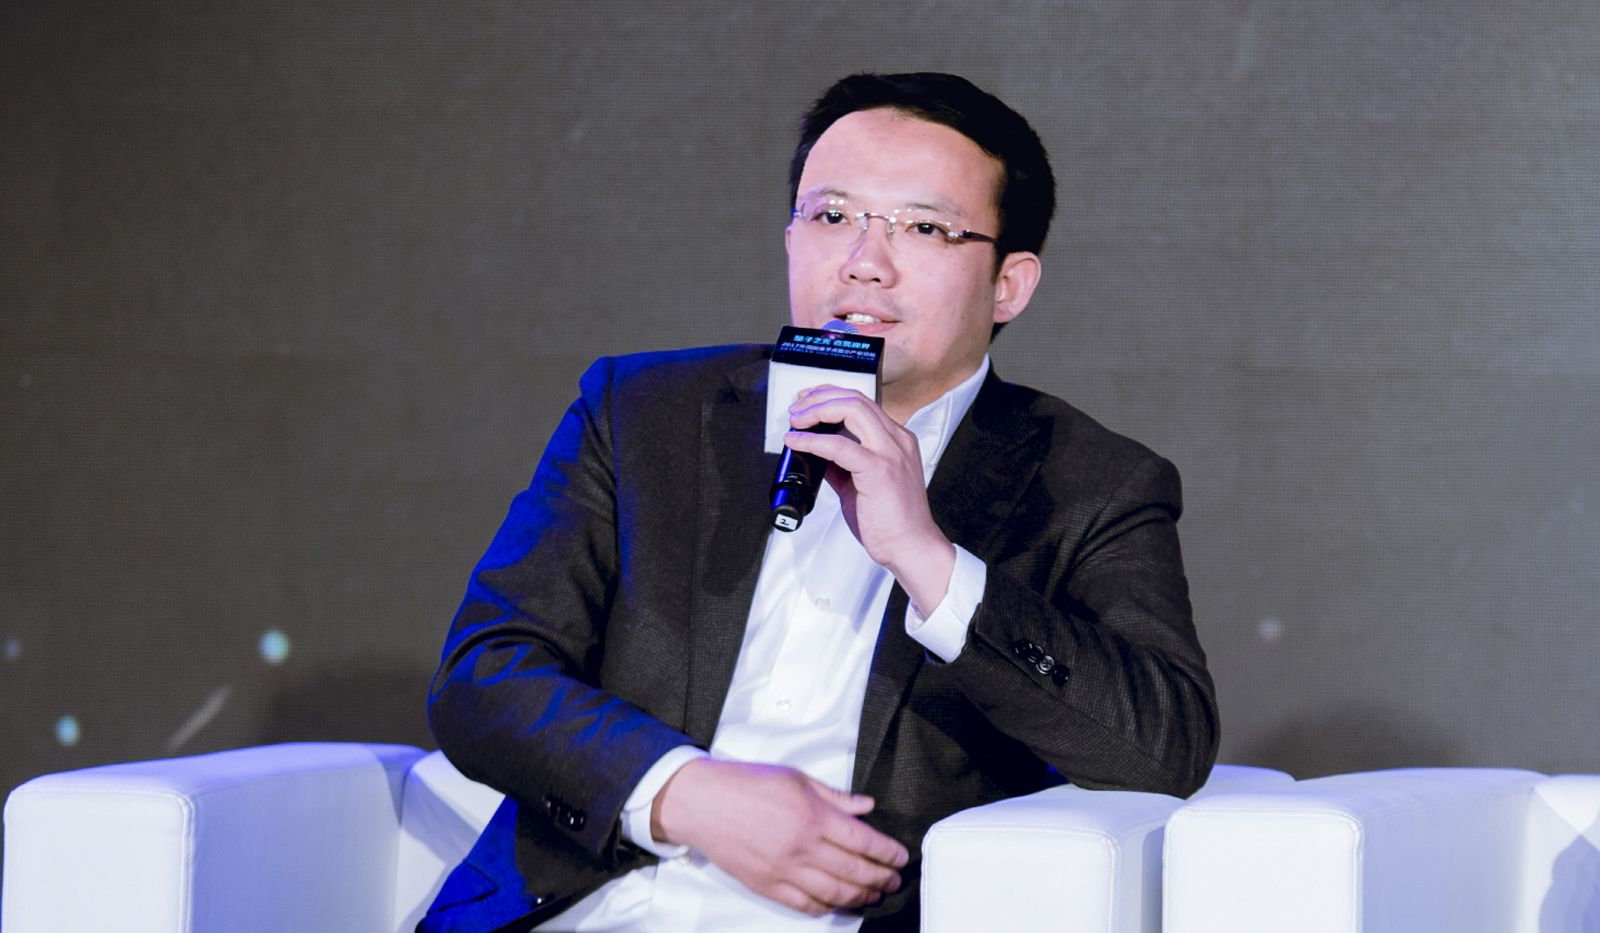 Liu Junguang, Samsung Electronics' Vice President of Visual Display Business at the International QLED Forum. © Samsung.Samsung launched first QLED TV screens in 2016 and introduced its latest generation of QLED TVs in 2017. The South Korean company also showcased first ever QLED curved monitor at CES 2017.